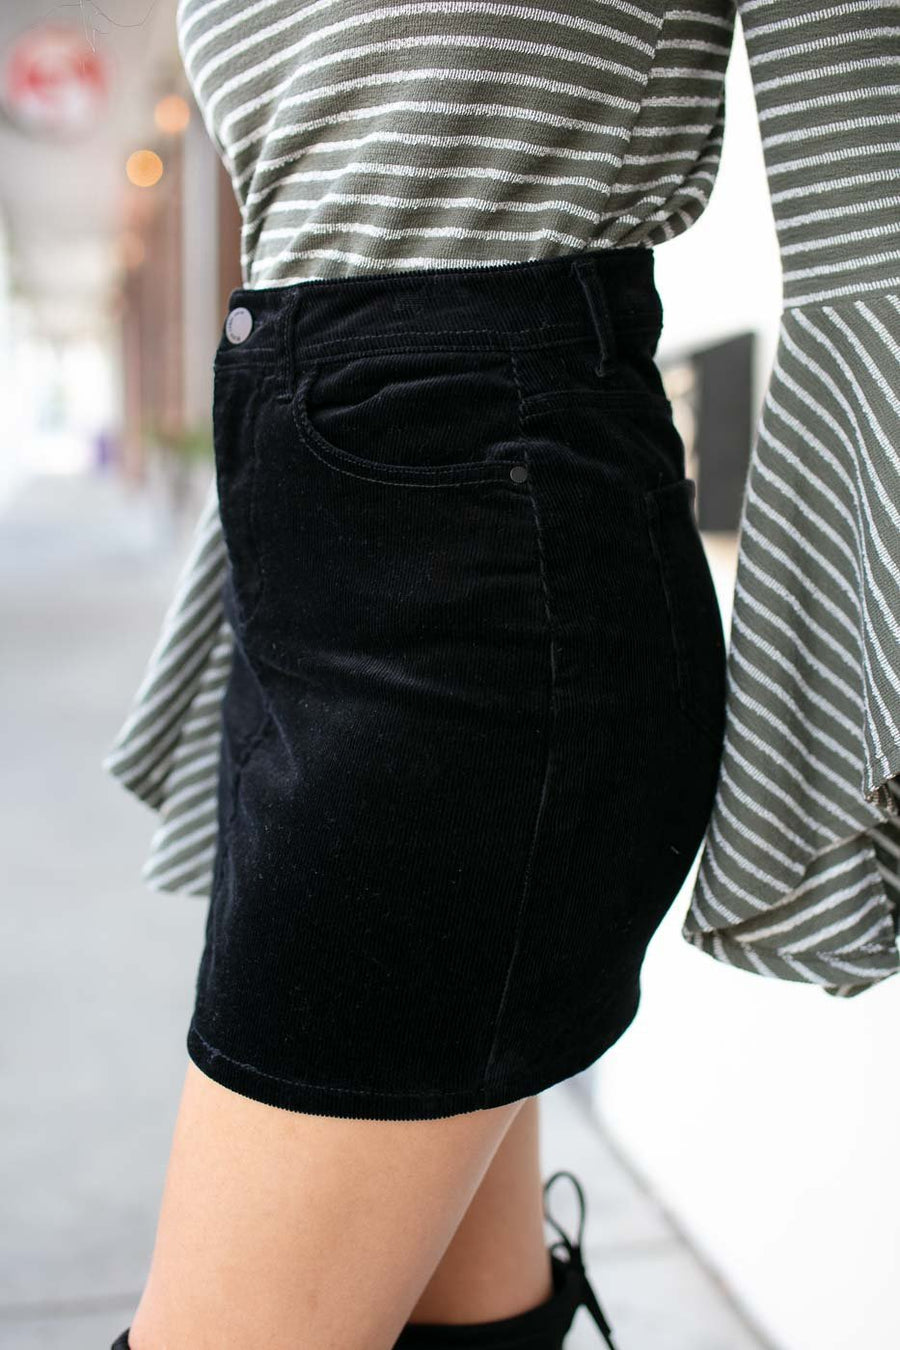 Bottoms The Classic Black Corduroy Skirt - Lotus Boutique